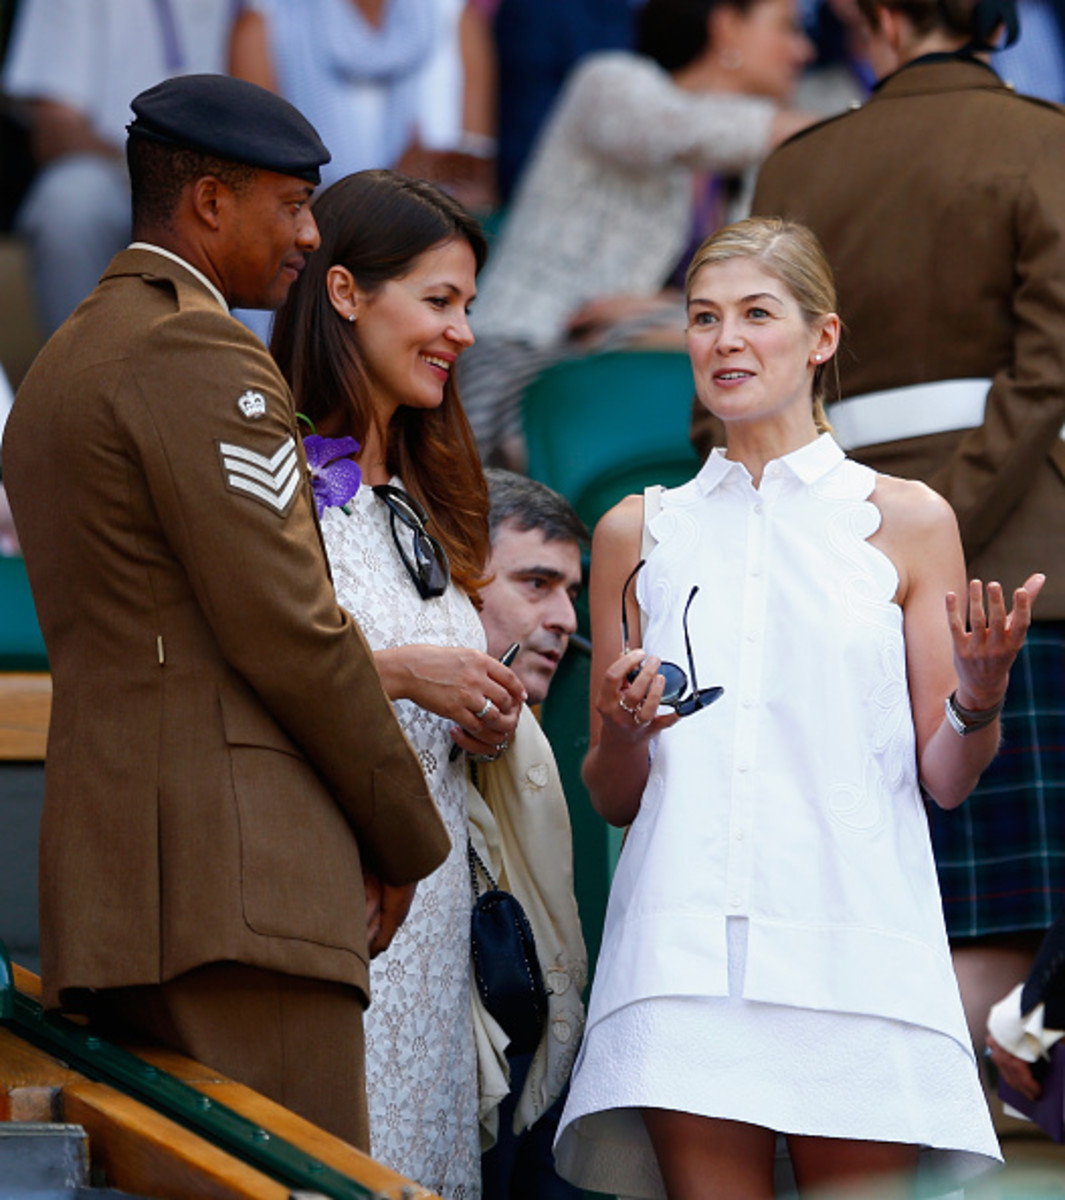 Rosamund Pike at Wimbledon. Photo: Julian Finney/Getty Images